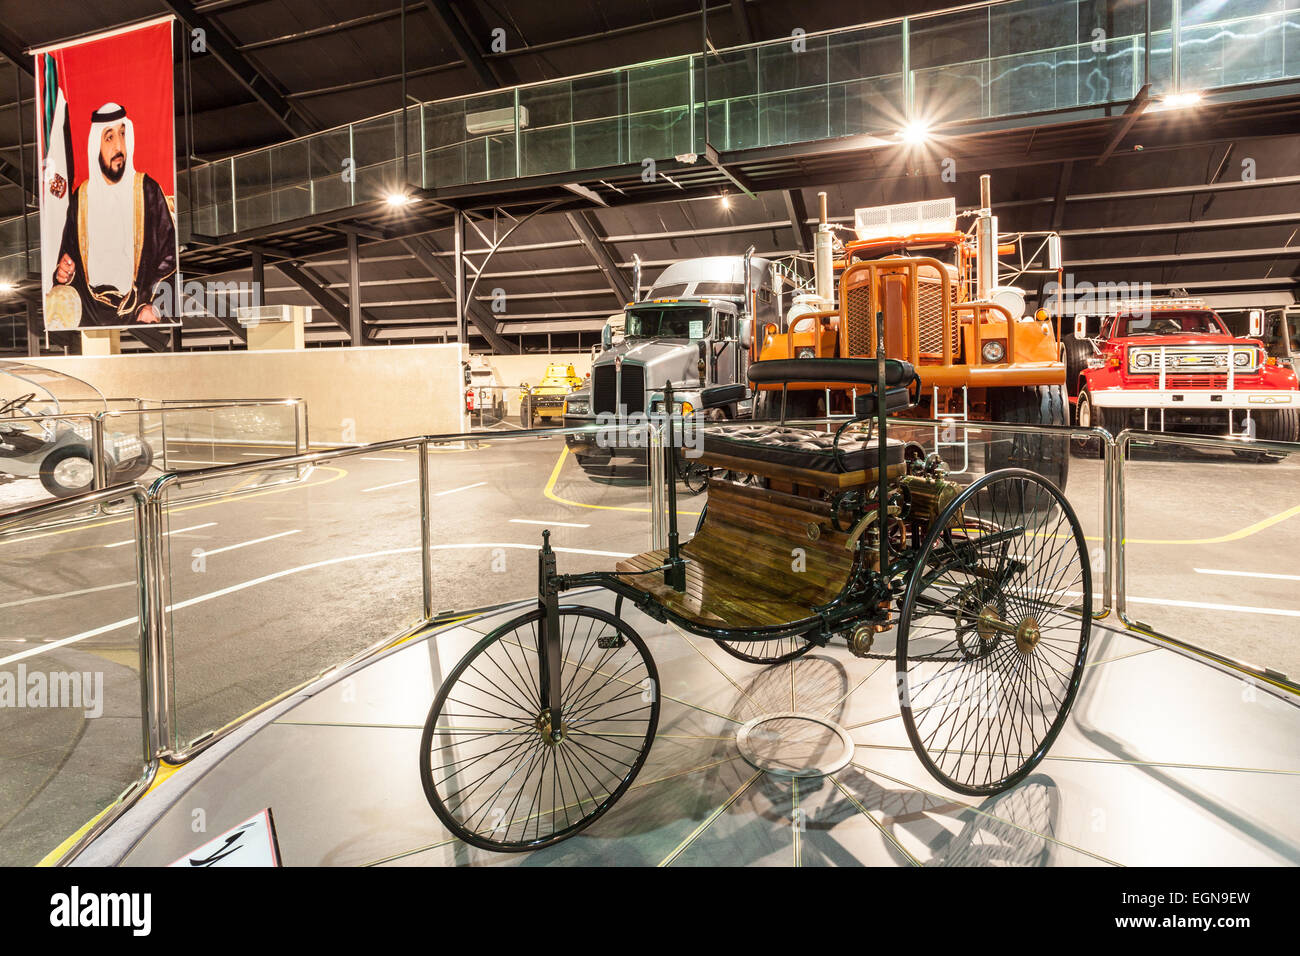 Benz Patent Motor Car at the Emirates National Auto Museum in Abu Dhabi - Stock Image